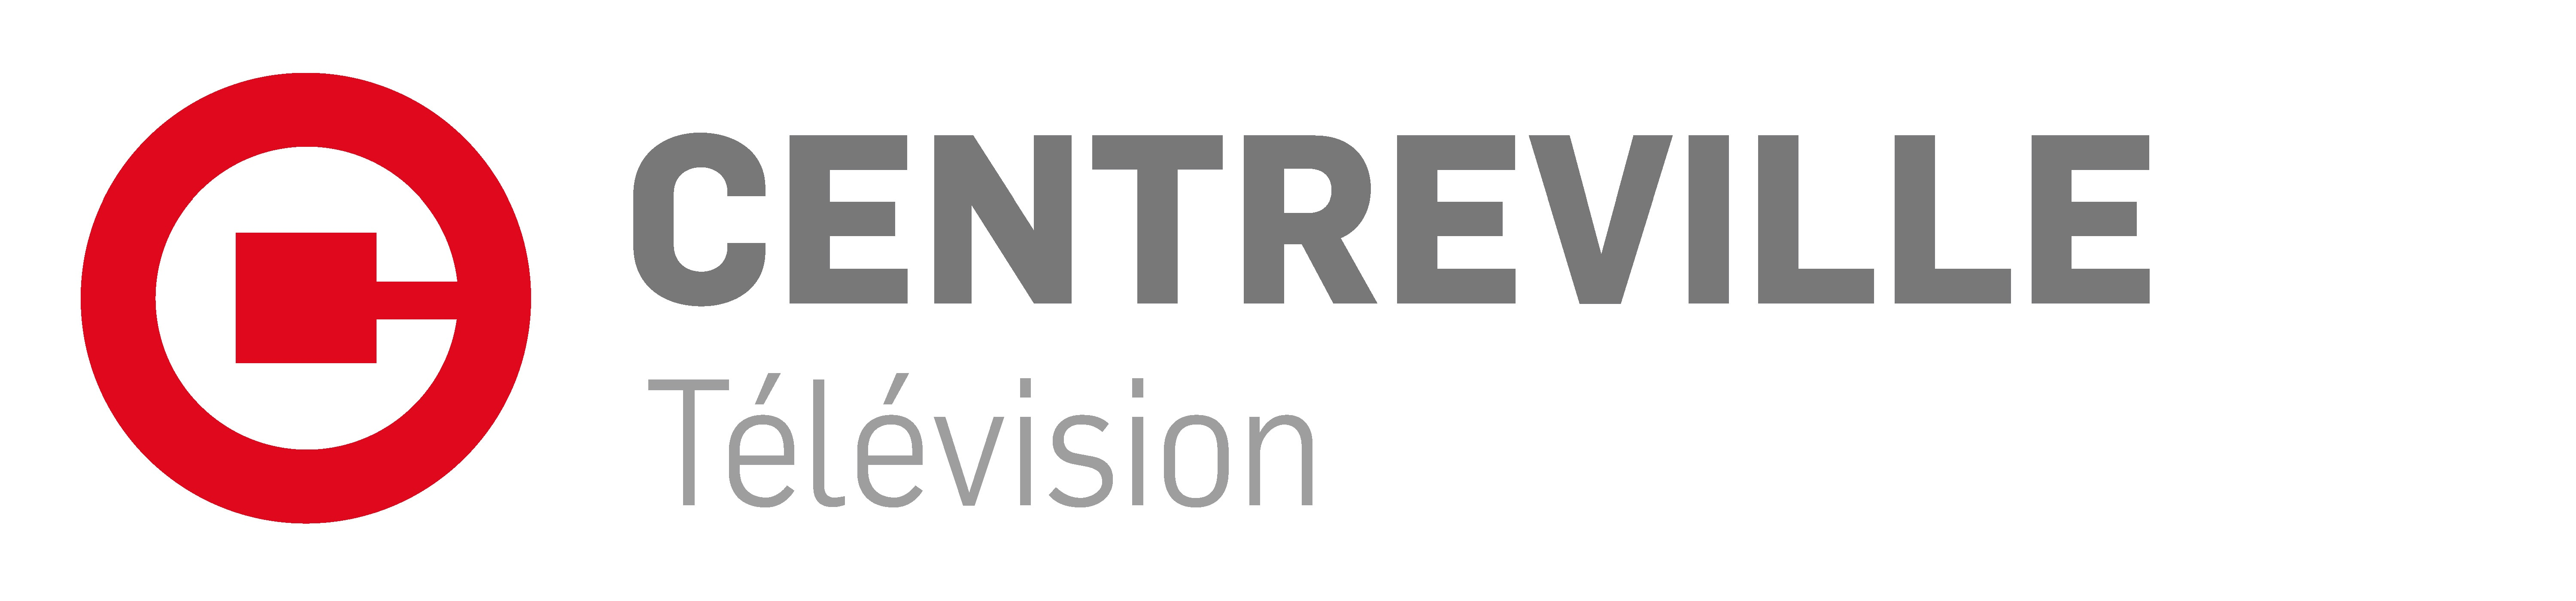 CENTREVILLE TELEVISION